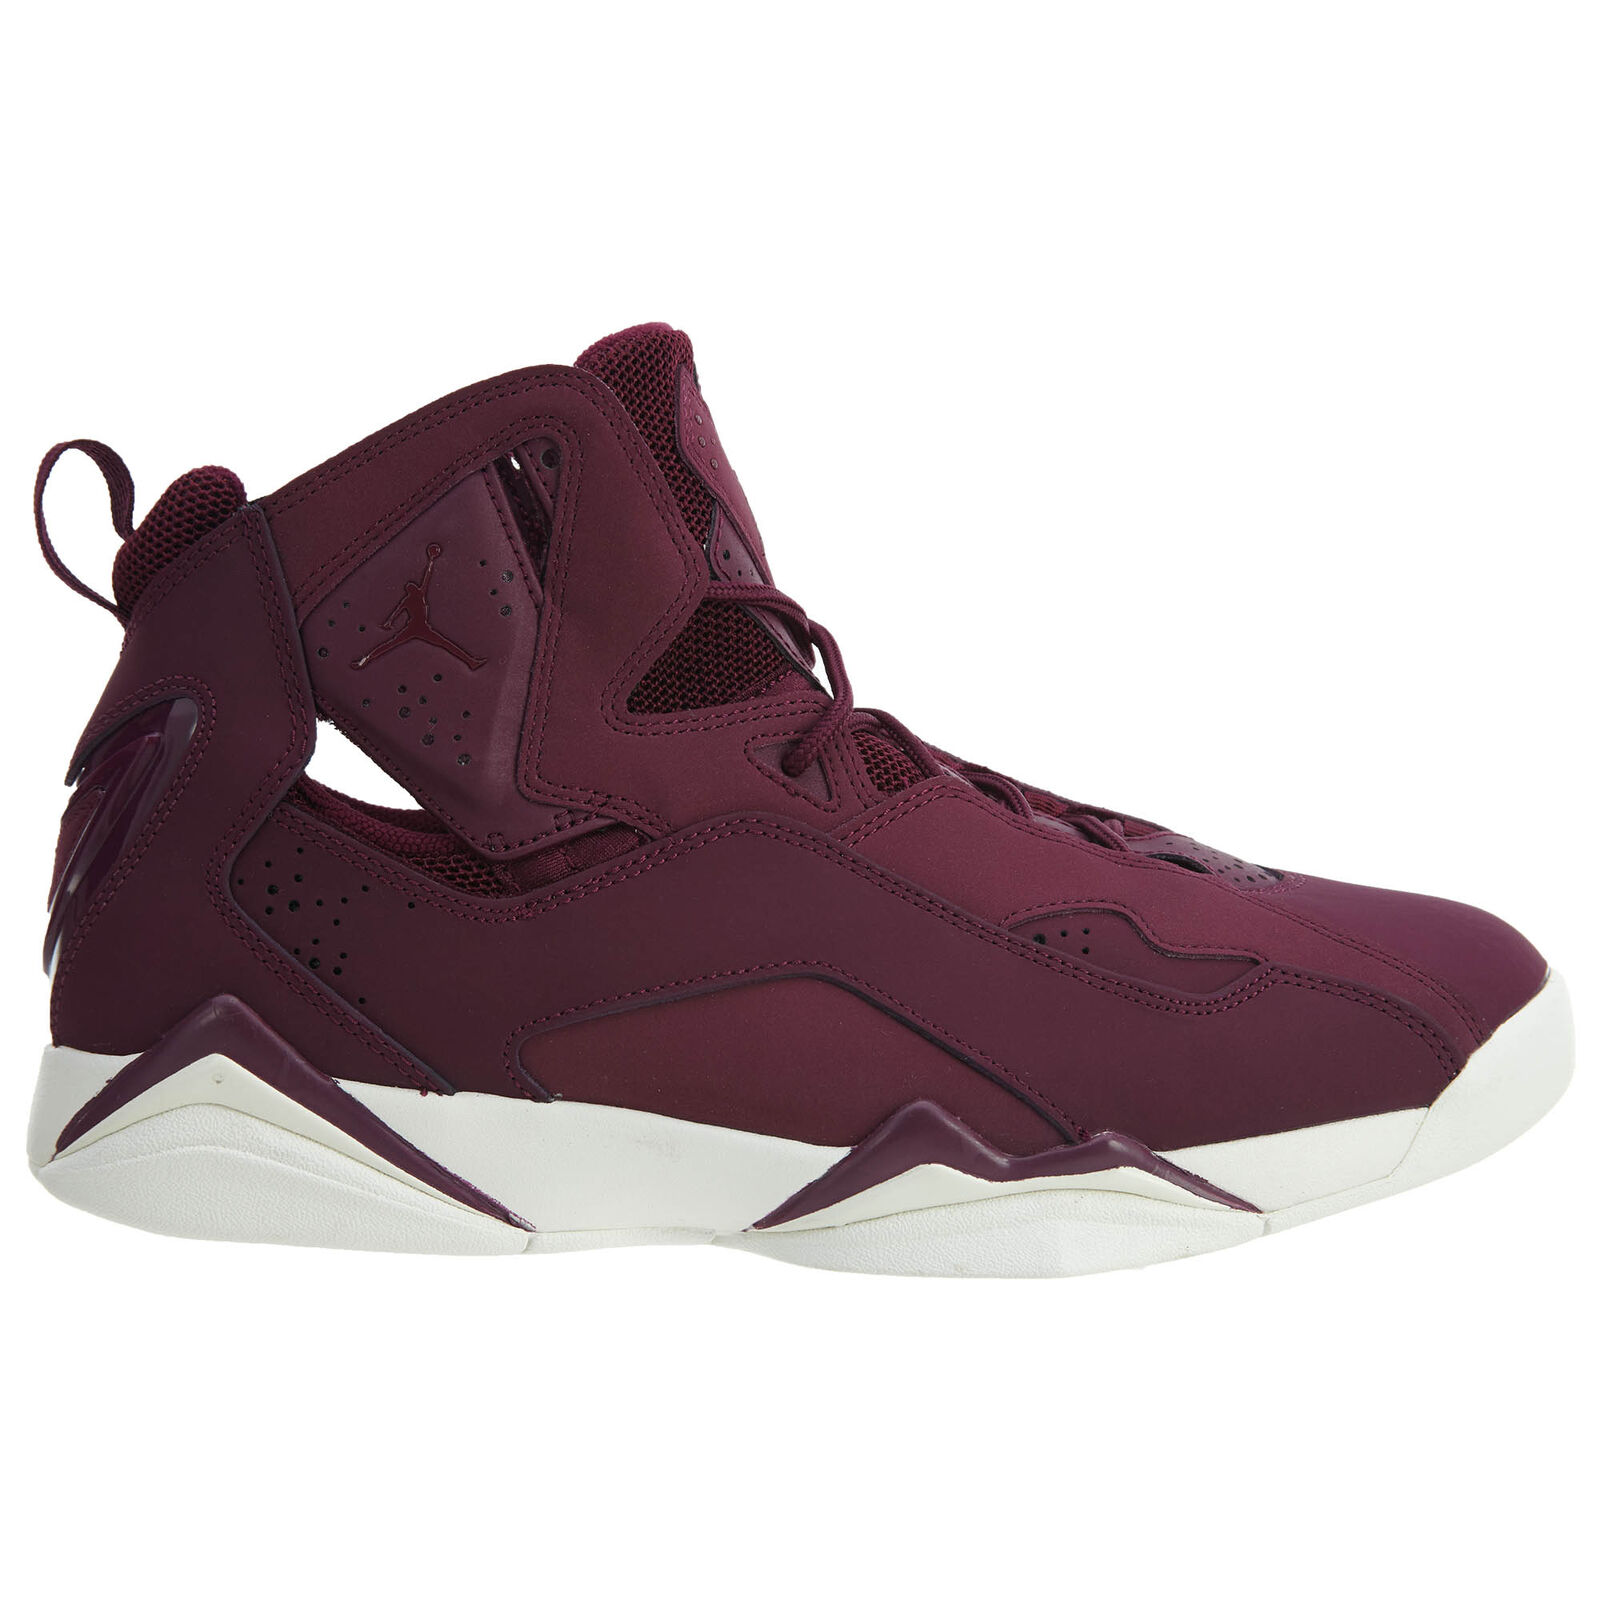 Jordan True Flight Mens 342964-625 Bordeaux Nubuck Basketball schuhe Größe 9.5